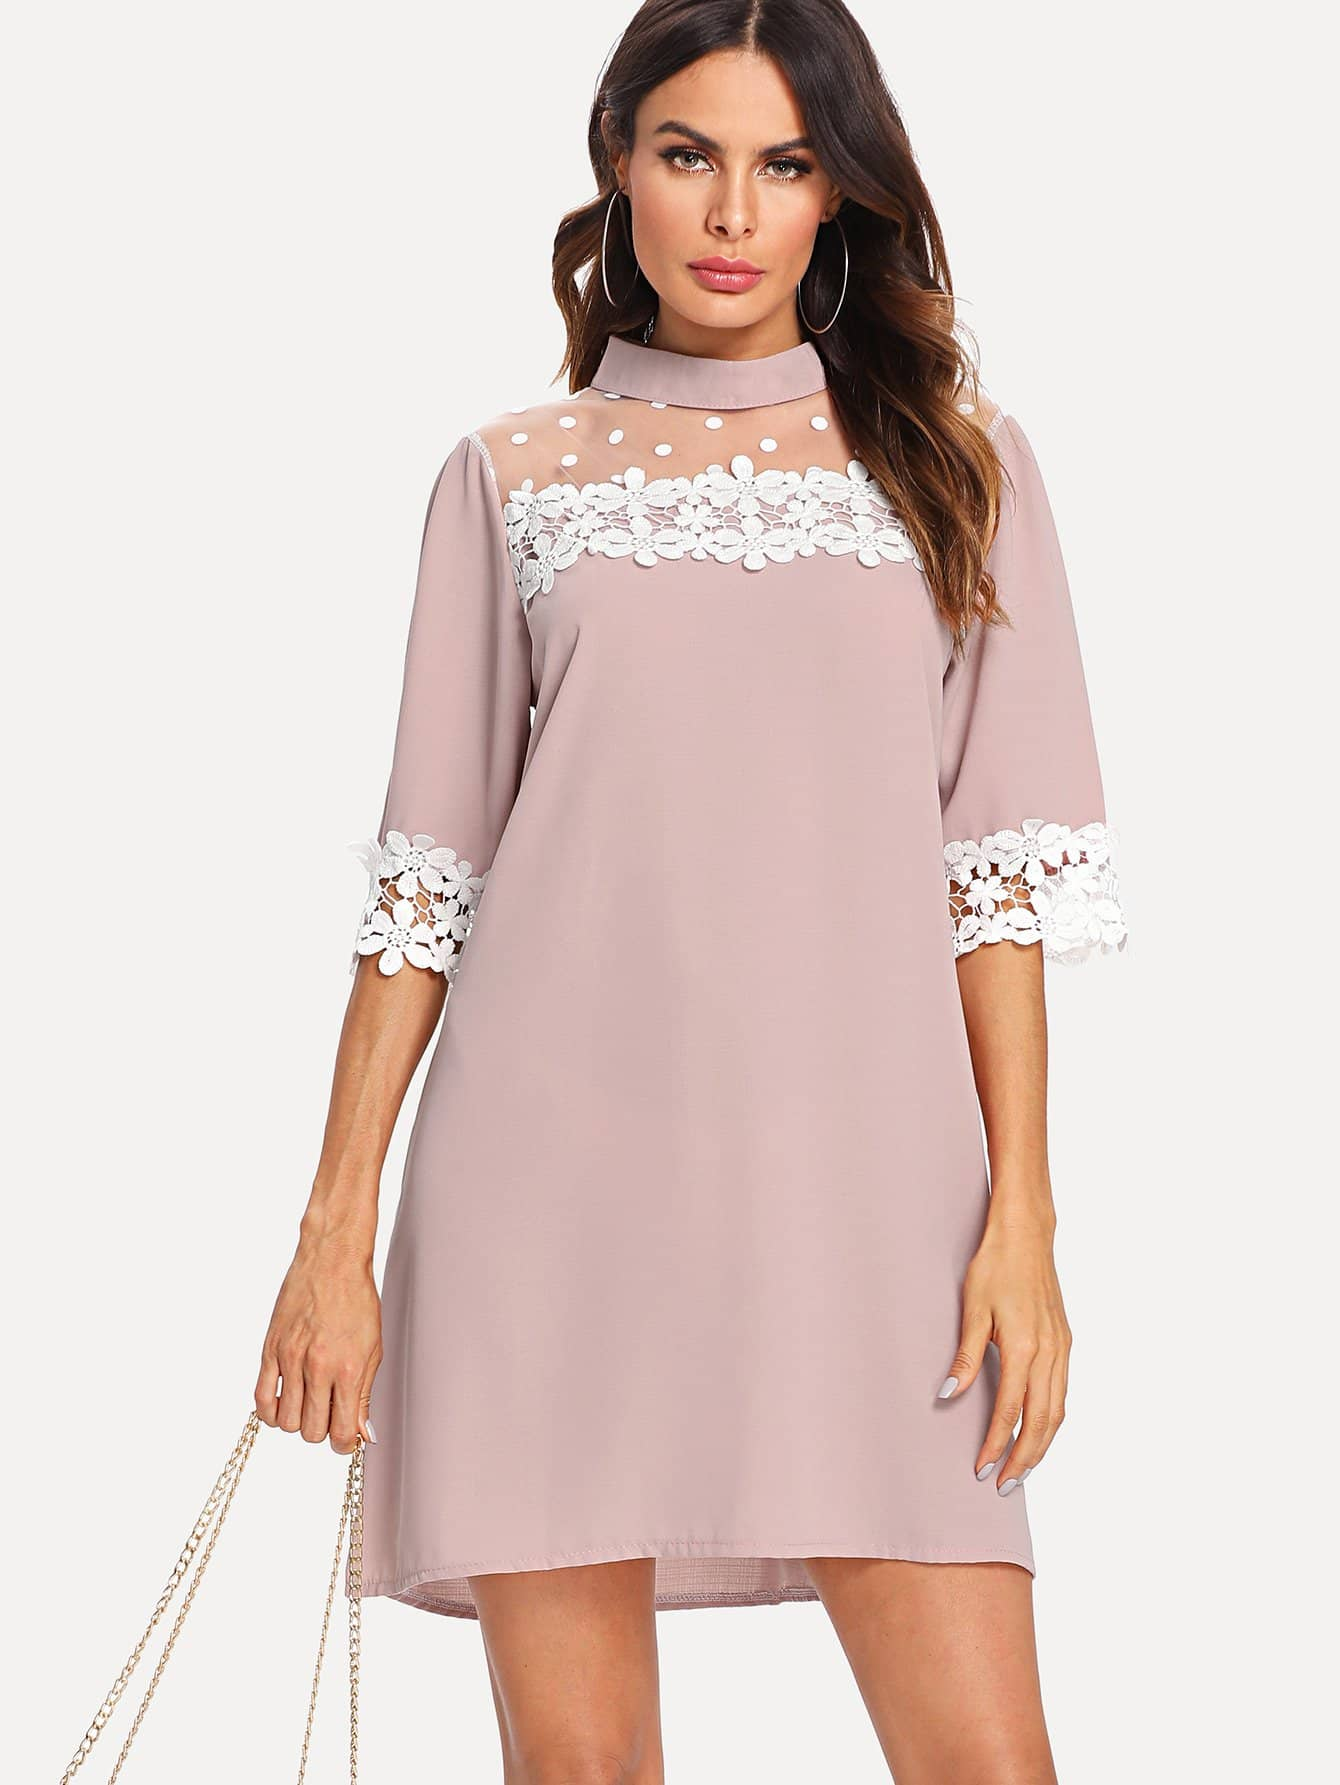 Sheer Mesh Panel Lace Trim Dress